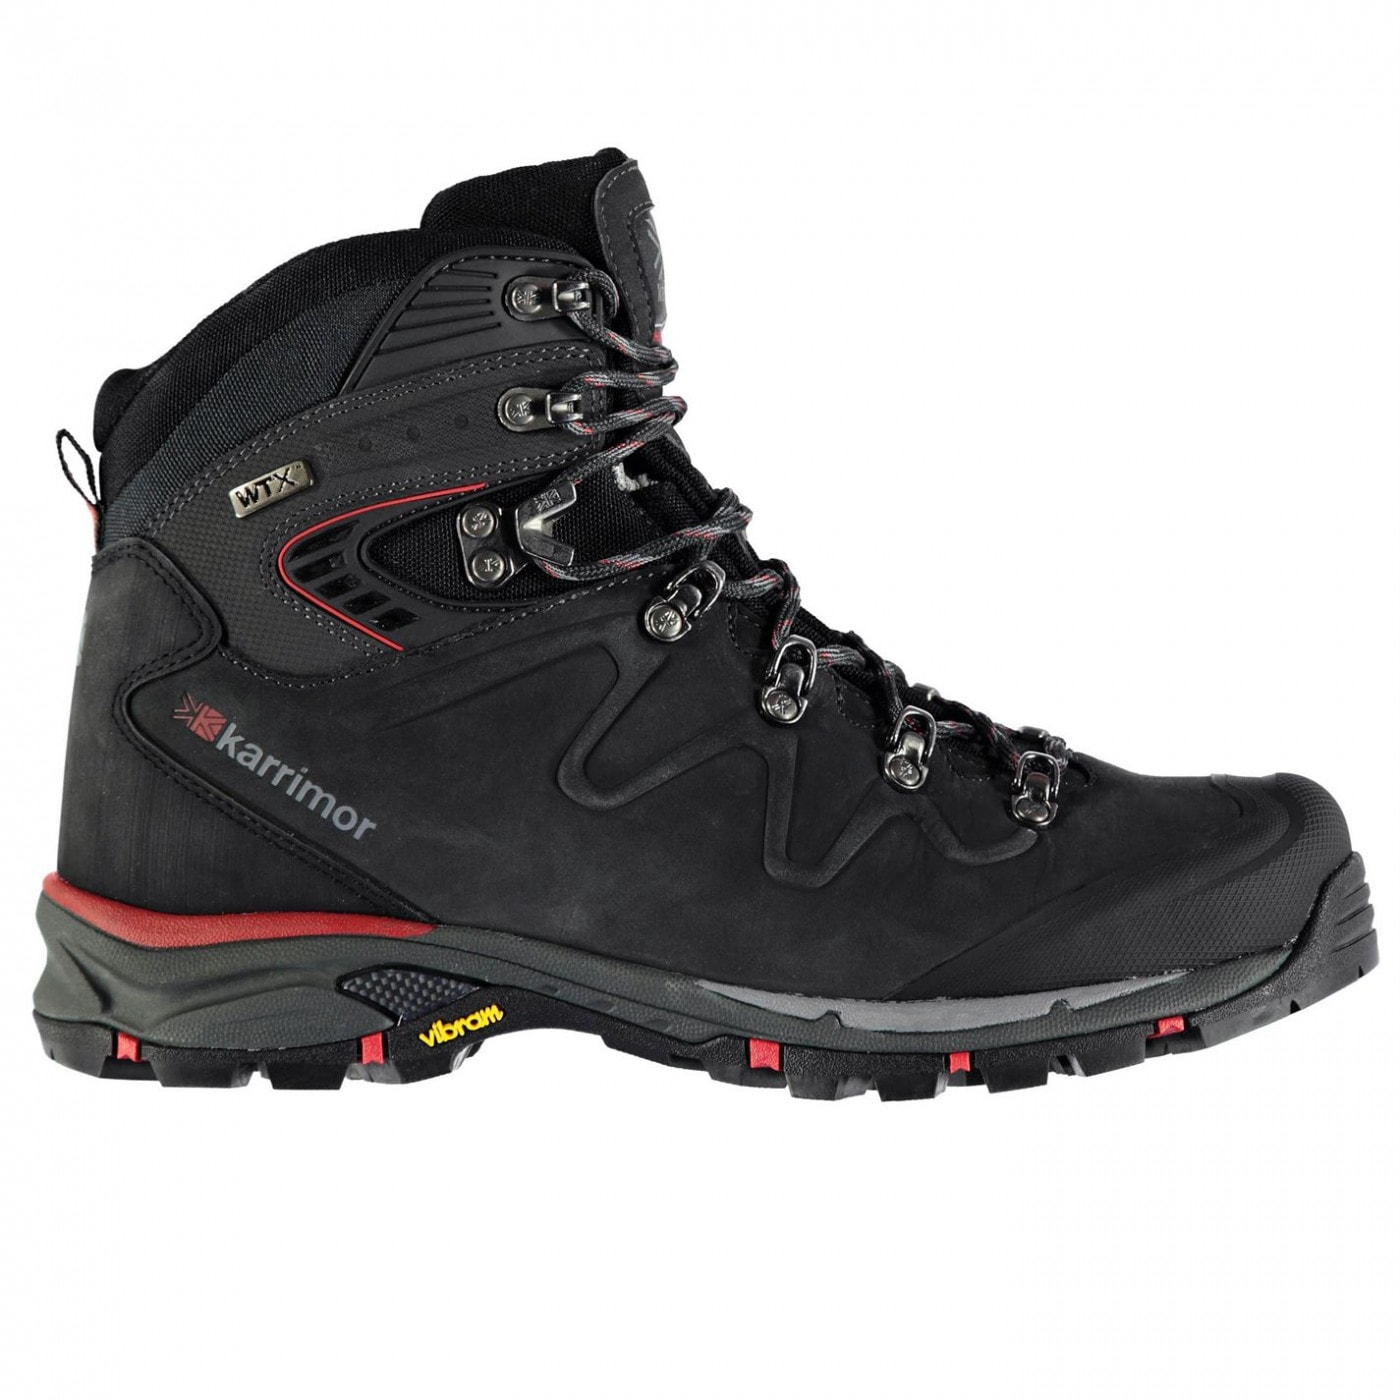 Karrimor Cheetah Walking Boot Mens